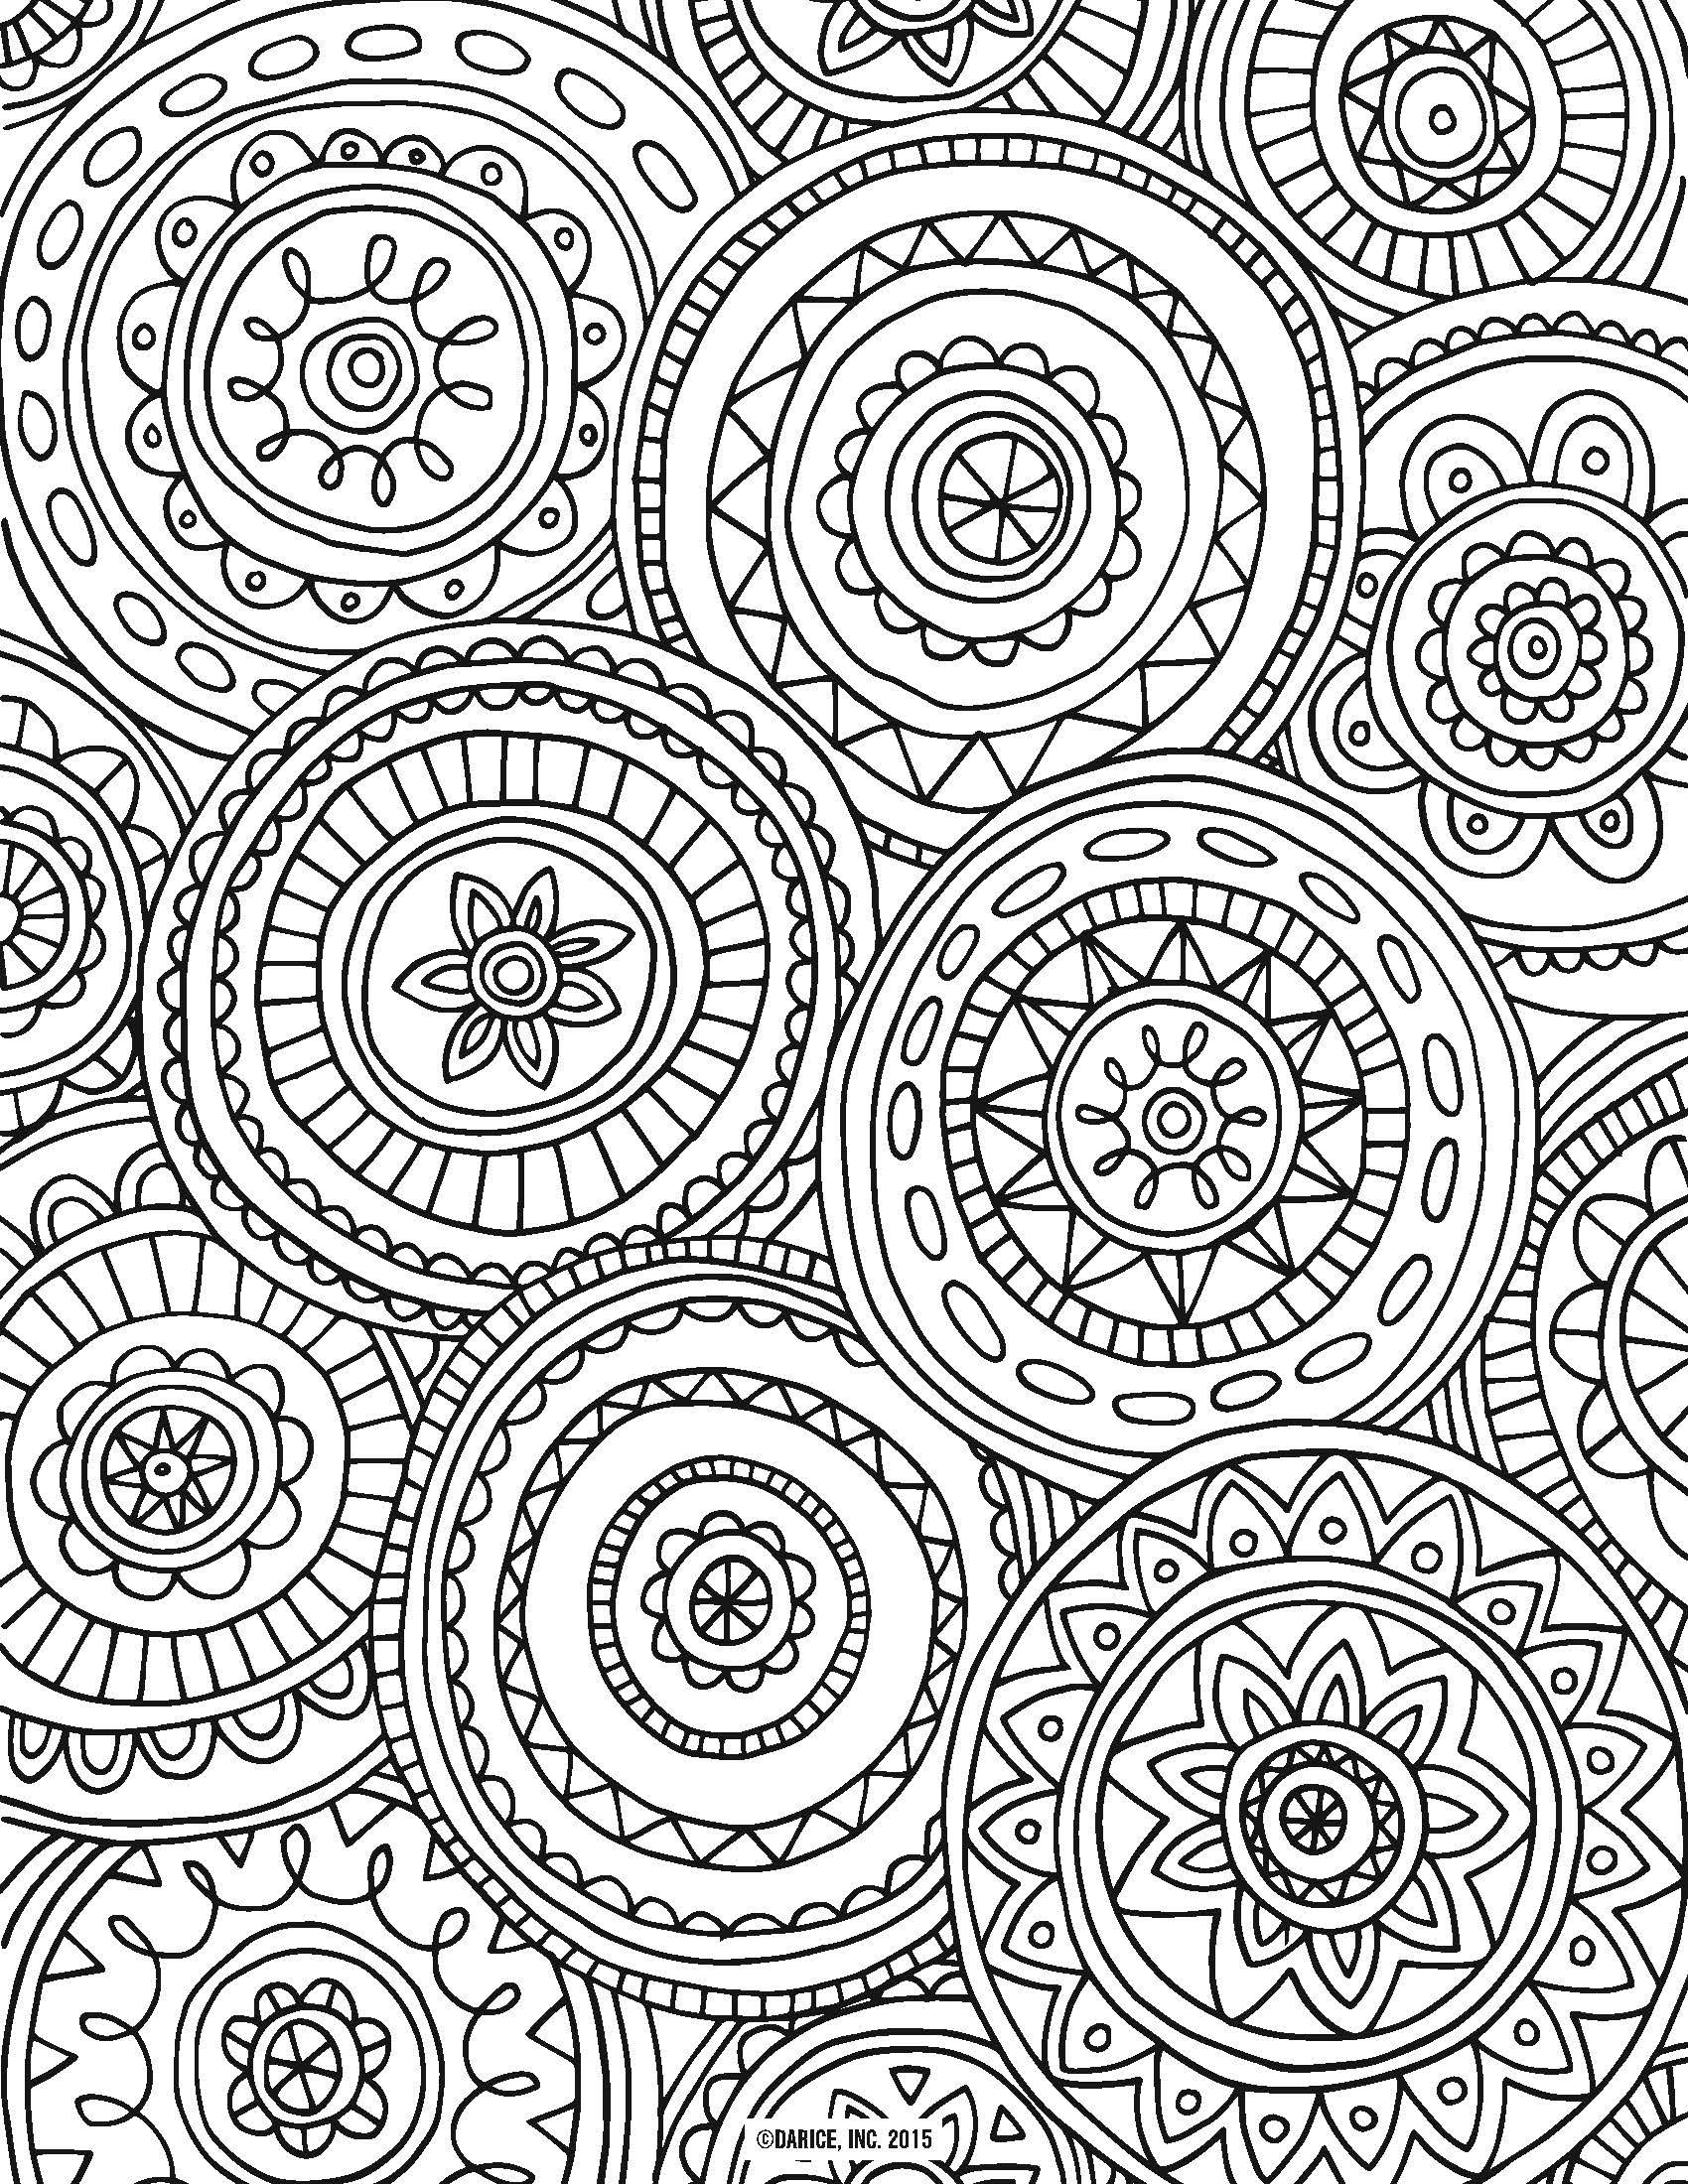 � 9 Free Printable Adult Coloring Pages | Adult Colouring